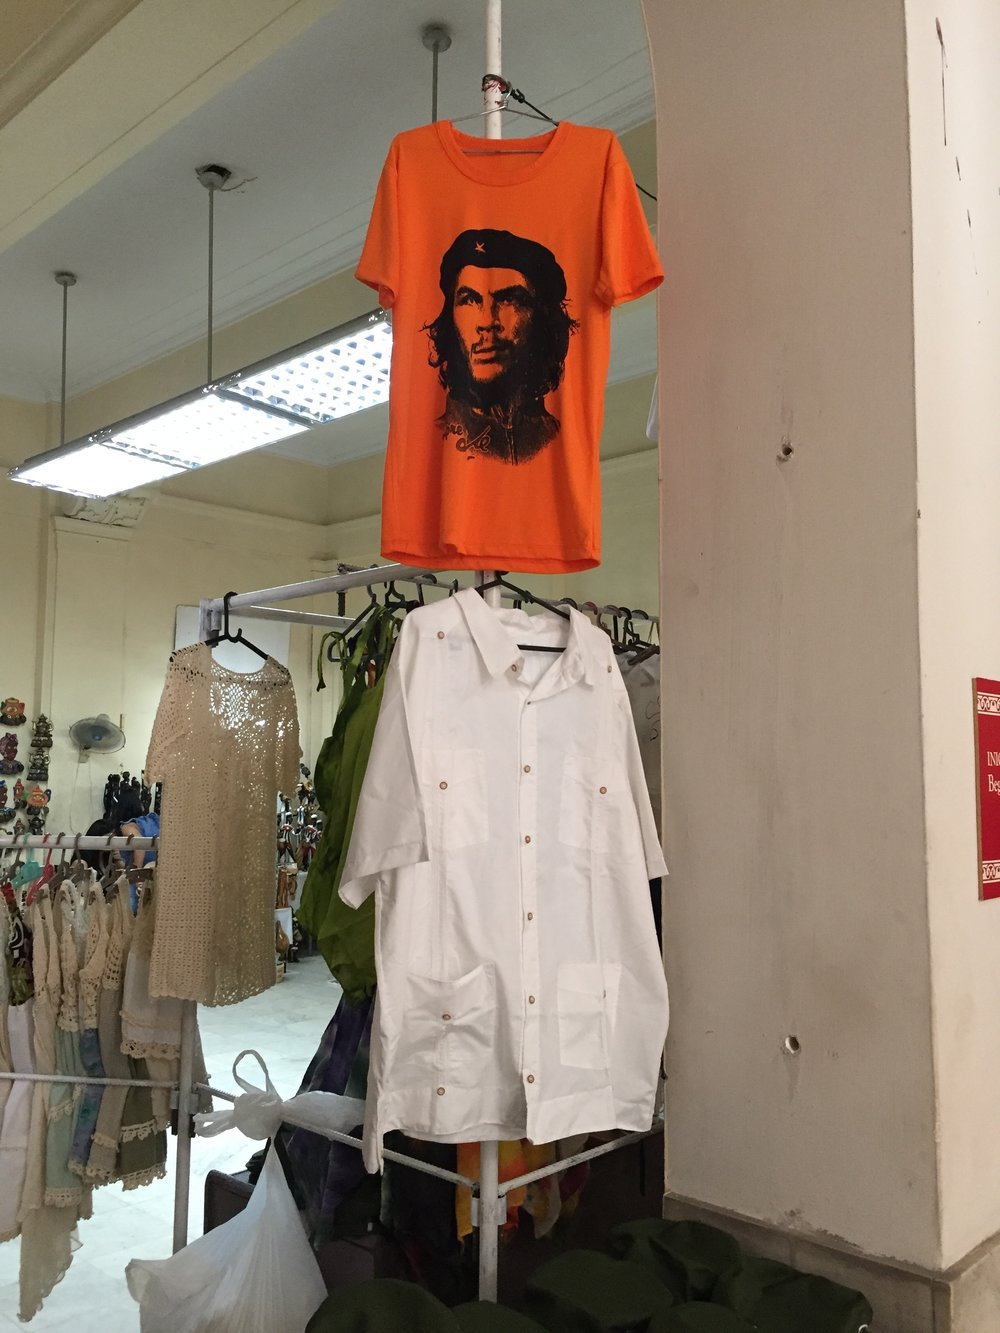 """Che"" Guevara's image is far more iconic in Cuba than Fidel's is. Ironically, or not, there are more retail opportunities in the museum dedicated to the revolution than can be found in a radius of several blocks in downtown Havana."